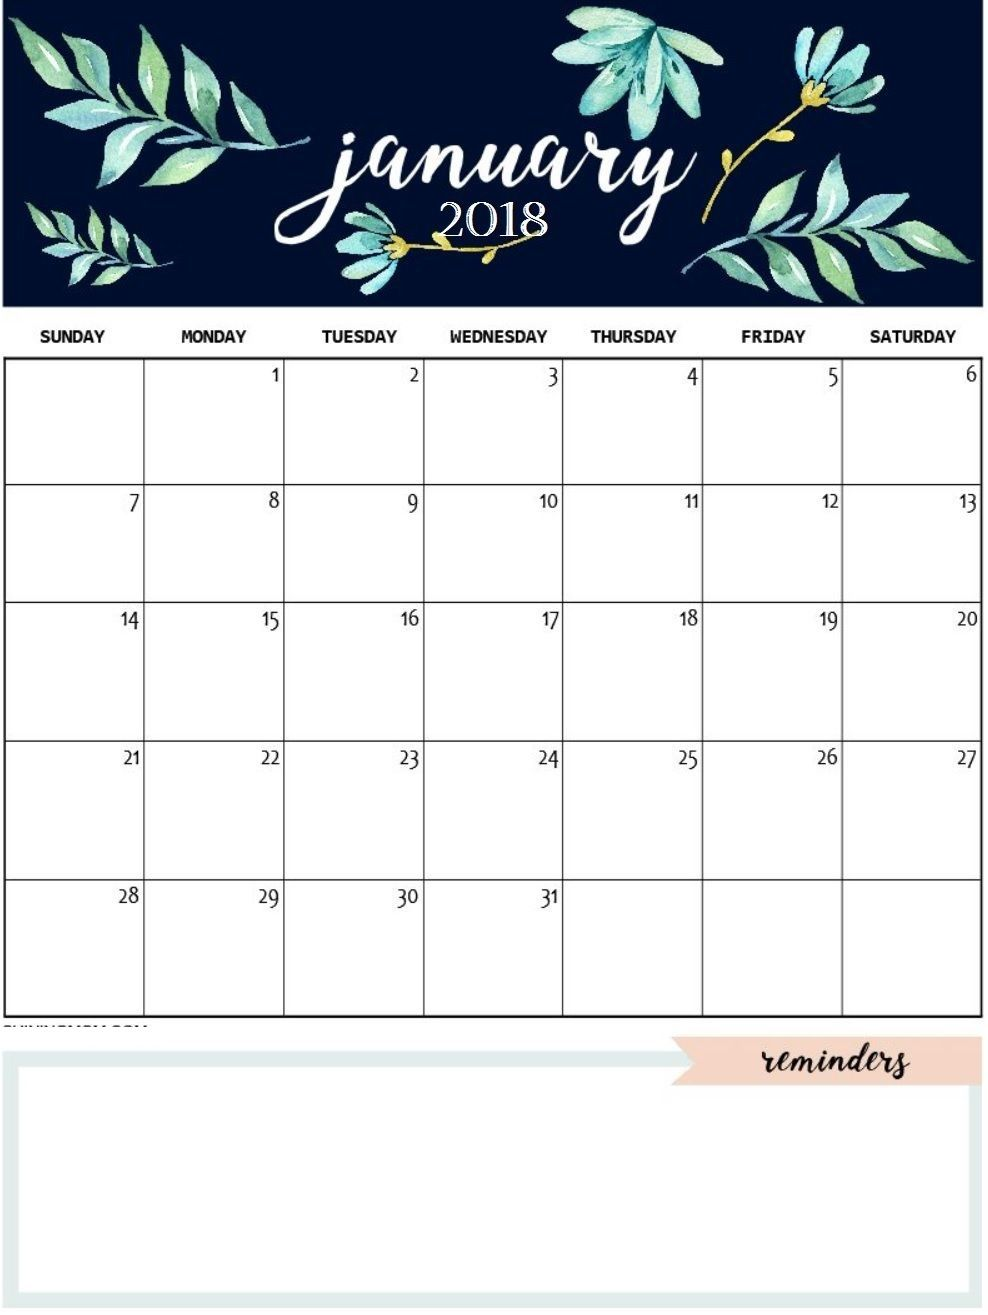 Daily Calendar 2019 January January 2019 Calendar Template Daily Work In Design | January